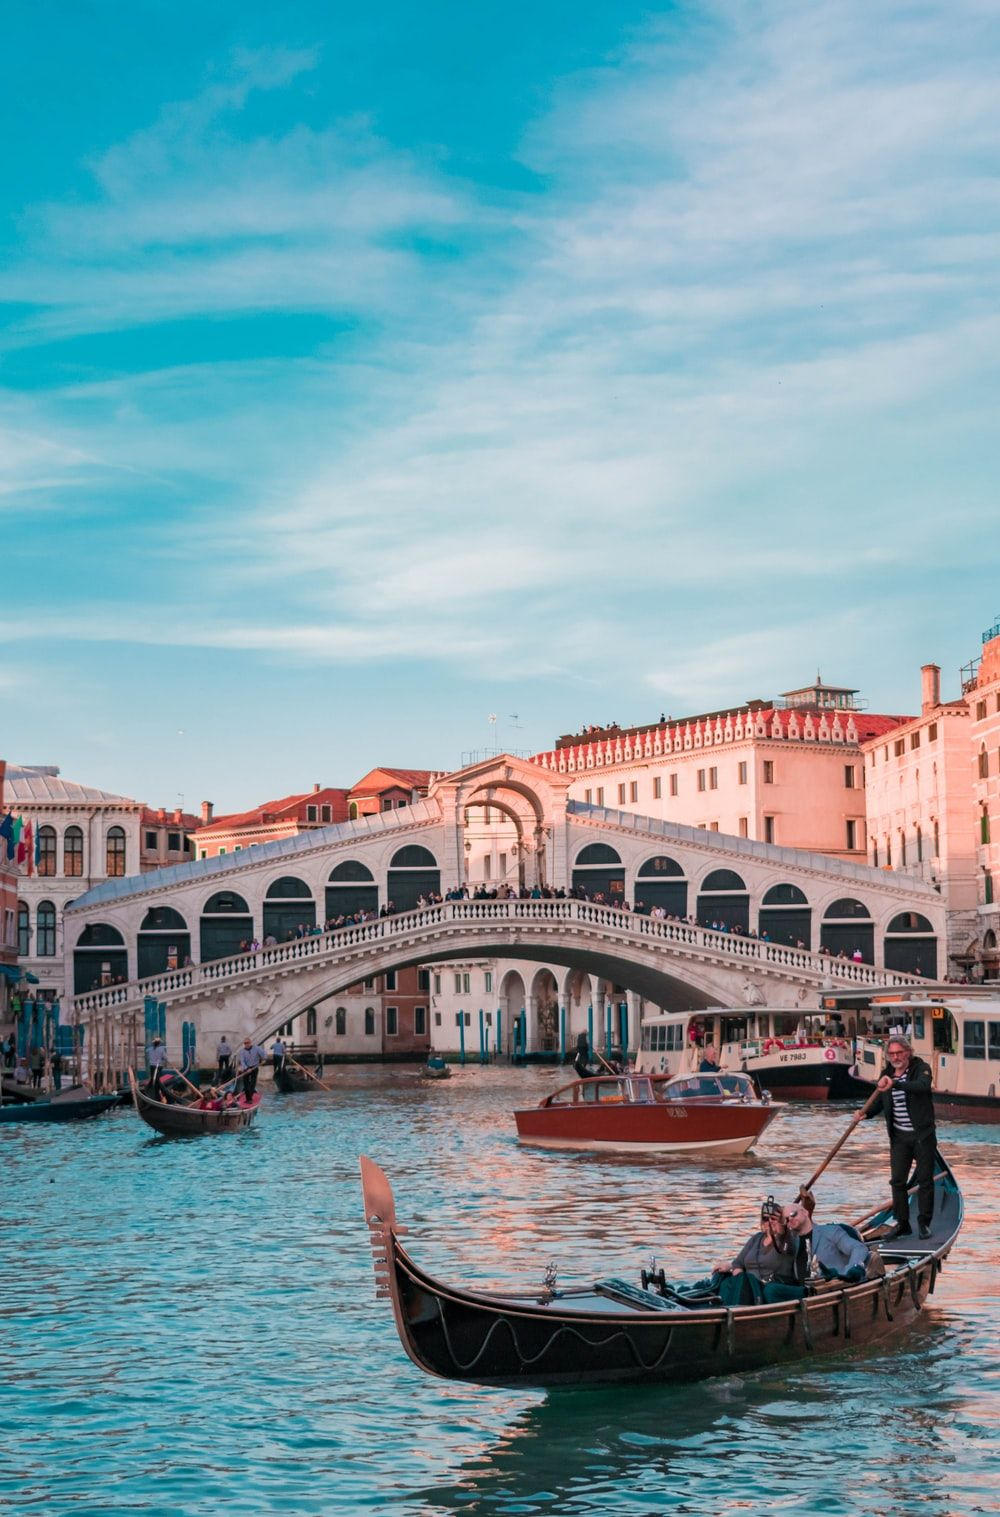 1000x1517 900+ Italy Images: Download HD Pictures & Photos on Unsplash